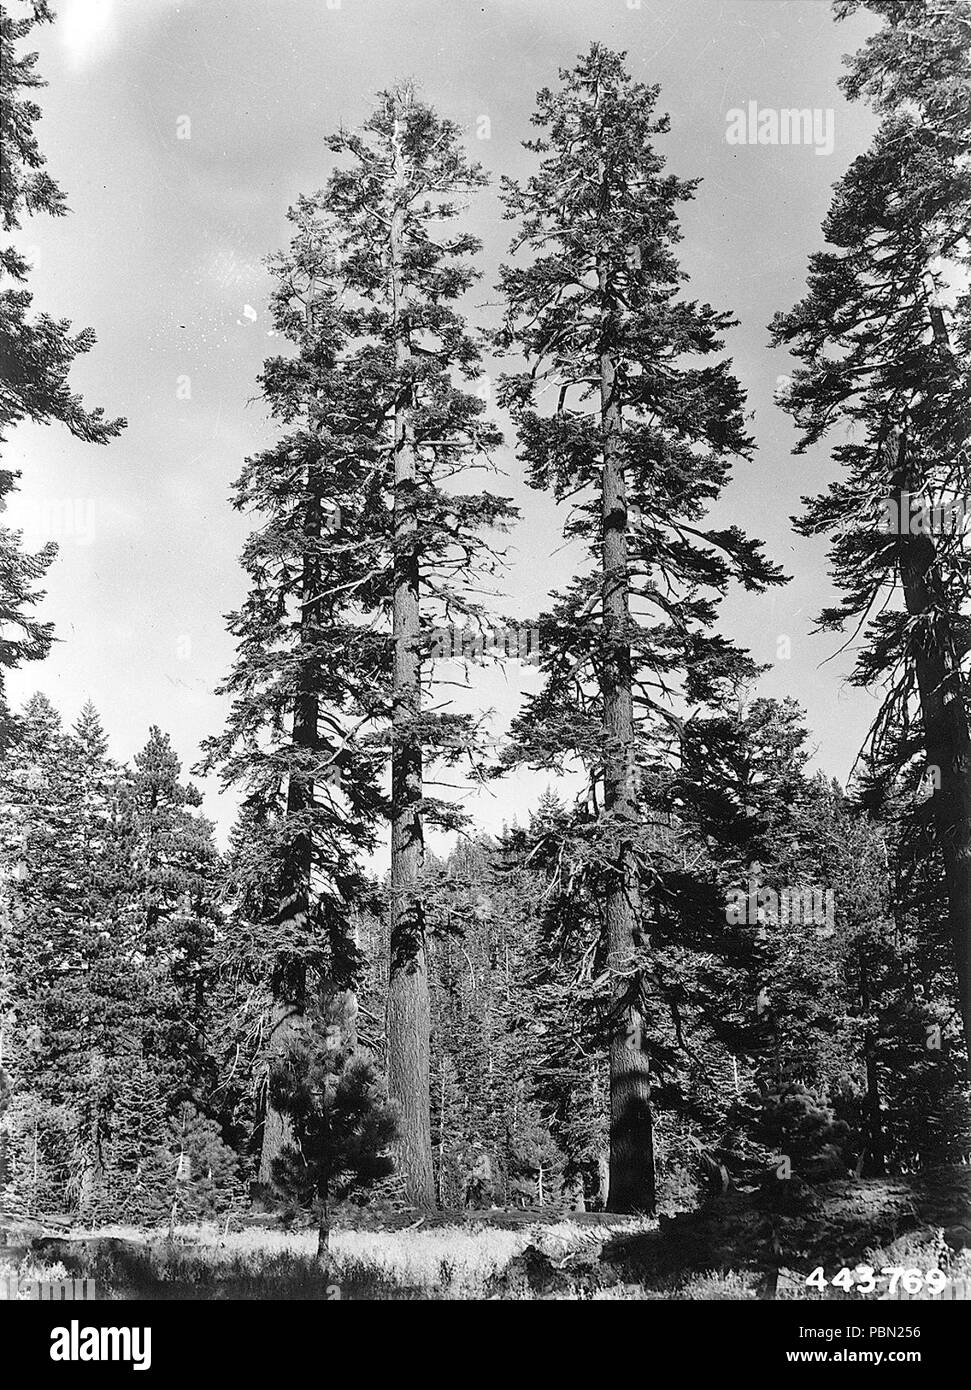 Abies magnifica near Mammoth Lakes. - Stock Image